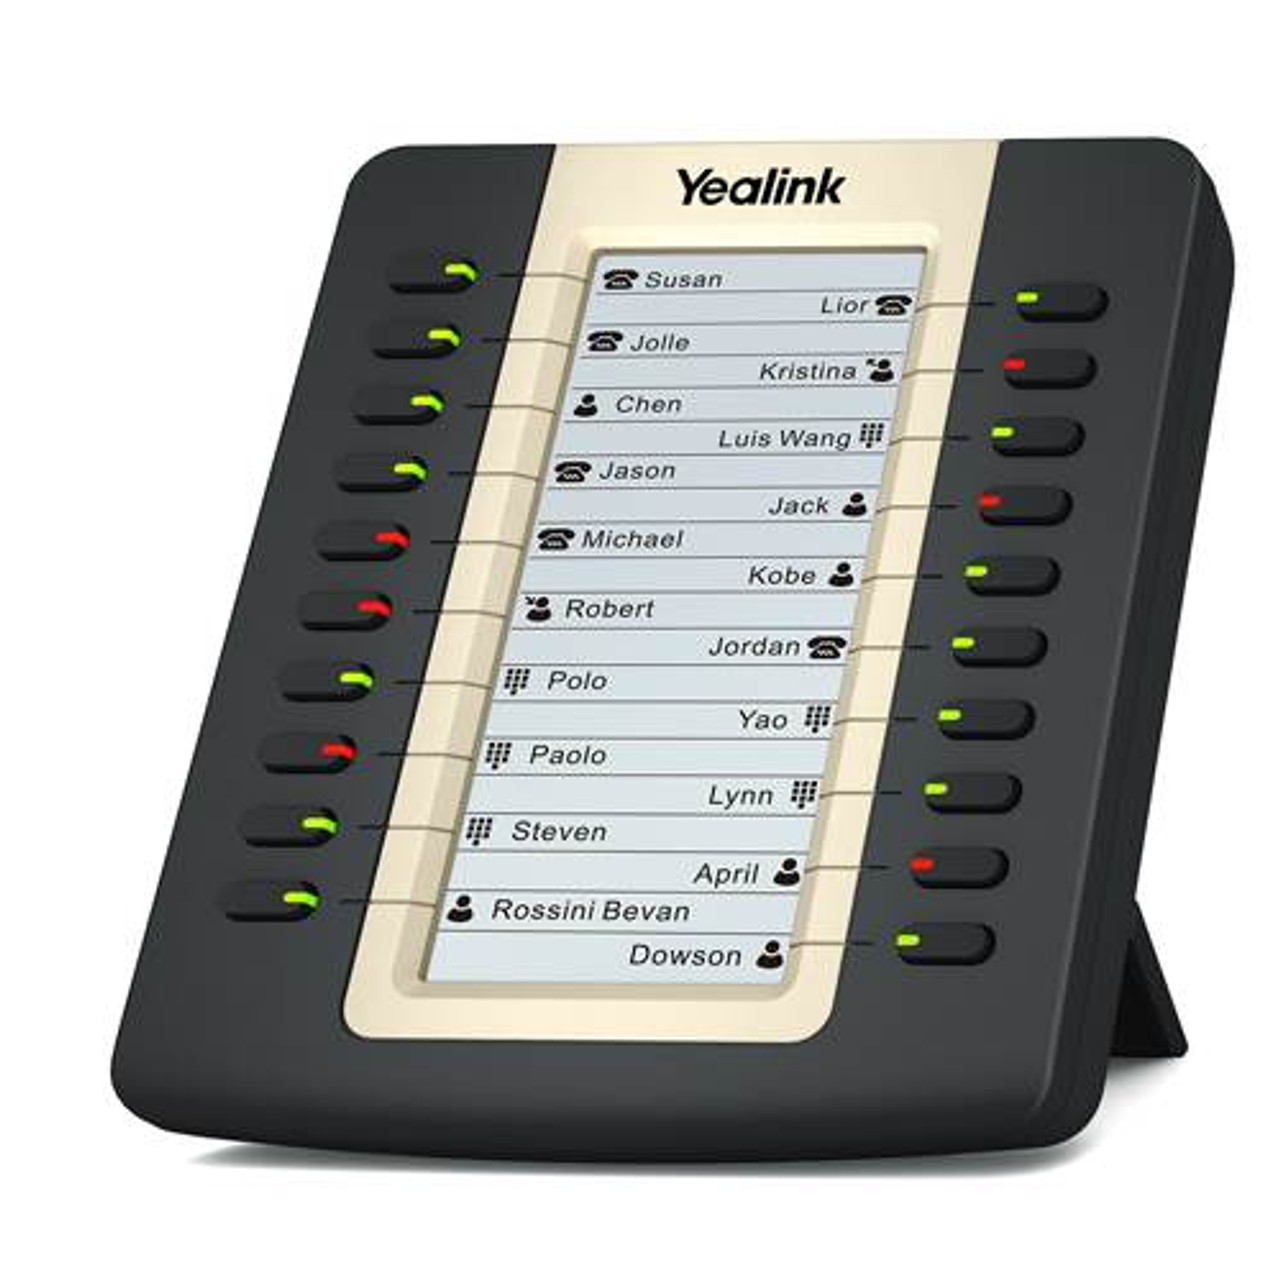 Image for Yealink EXP20 High-Performance LCD Expansion Module CX Computer Superstore